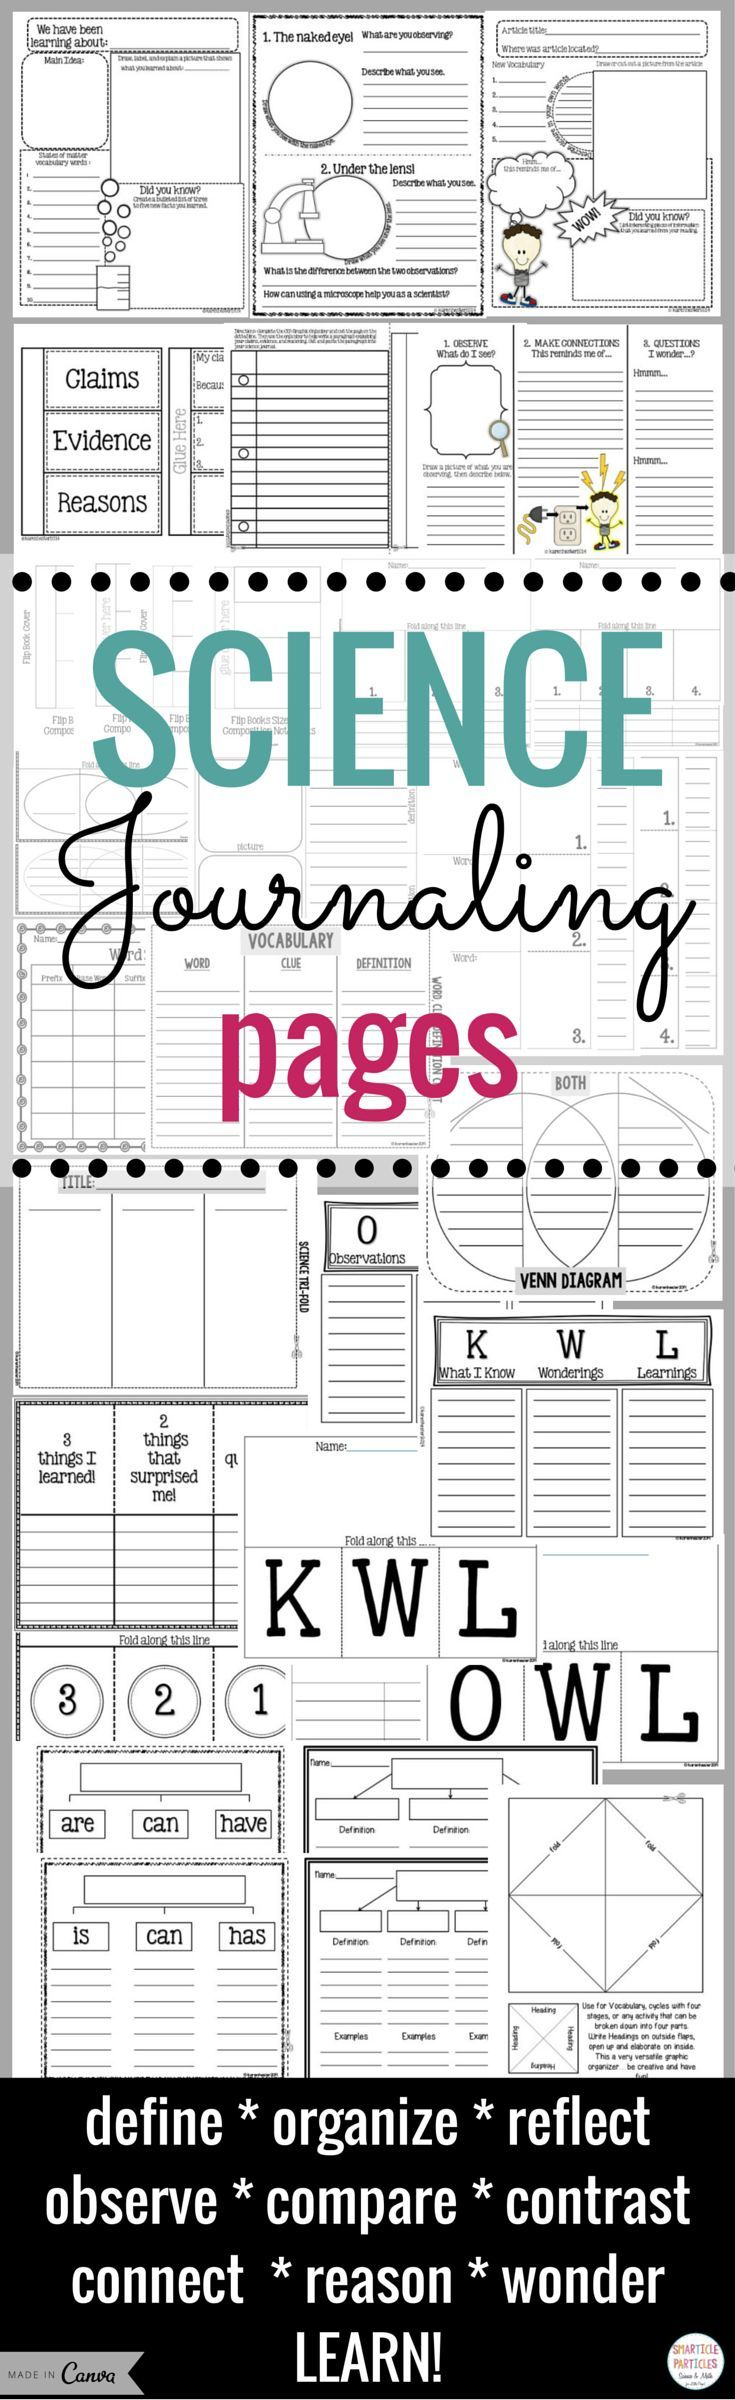 Drawing diagrams in pages - Interactive Notebook Science Journaling Pages